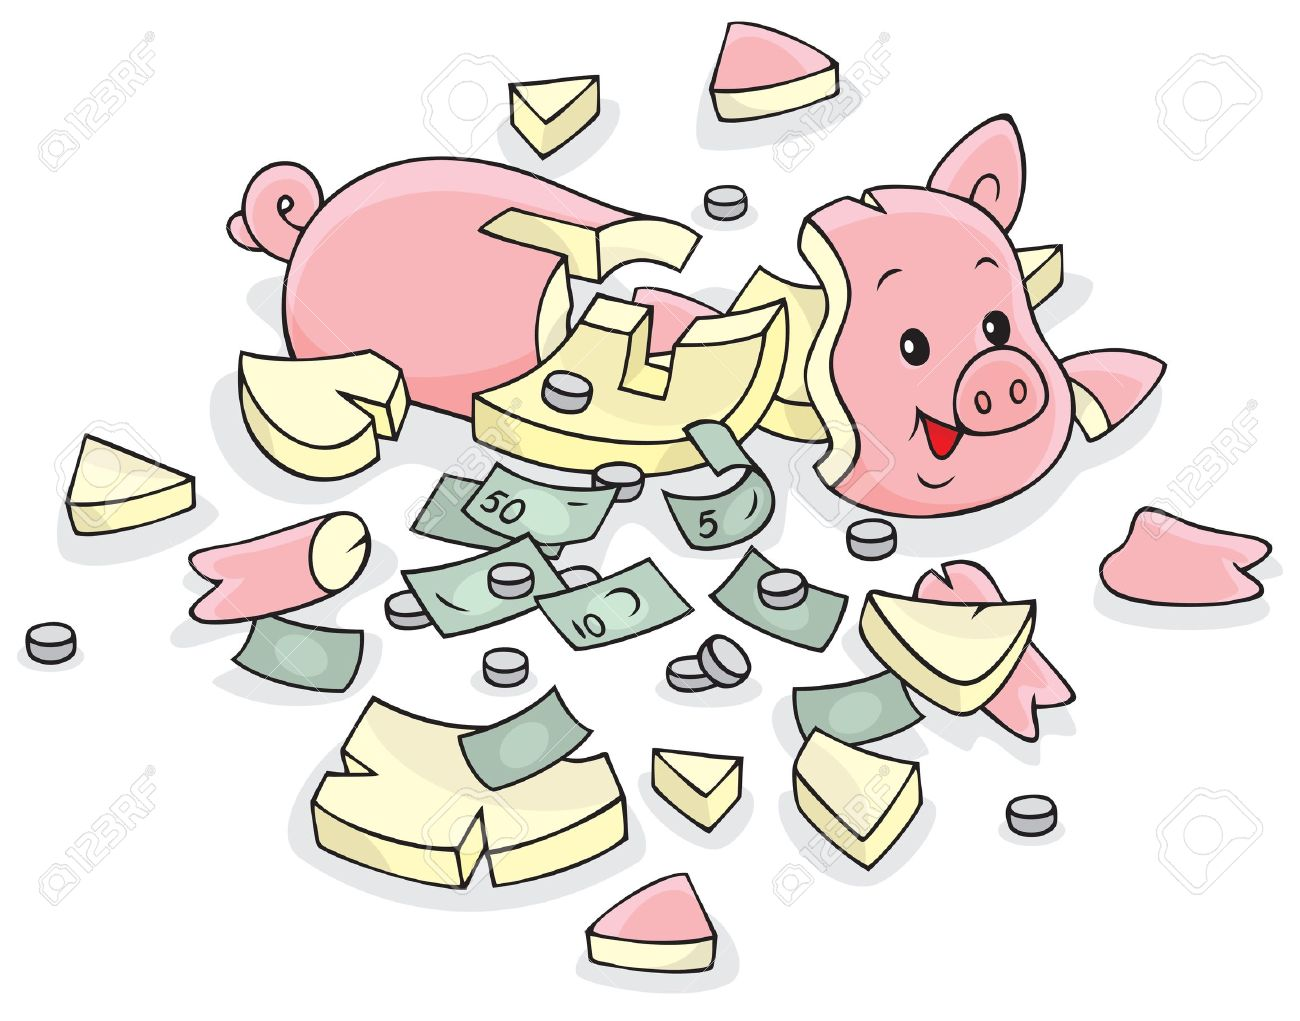 Breaking piggy bank clipart